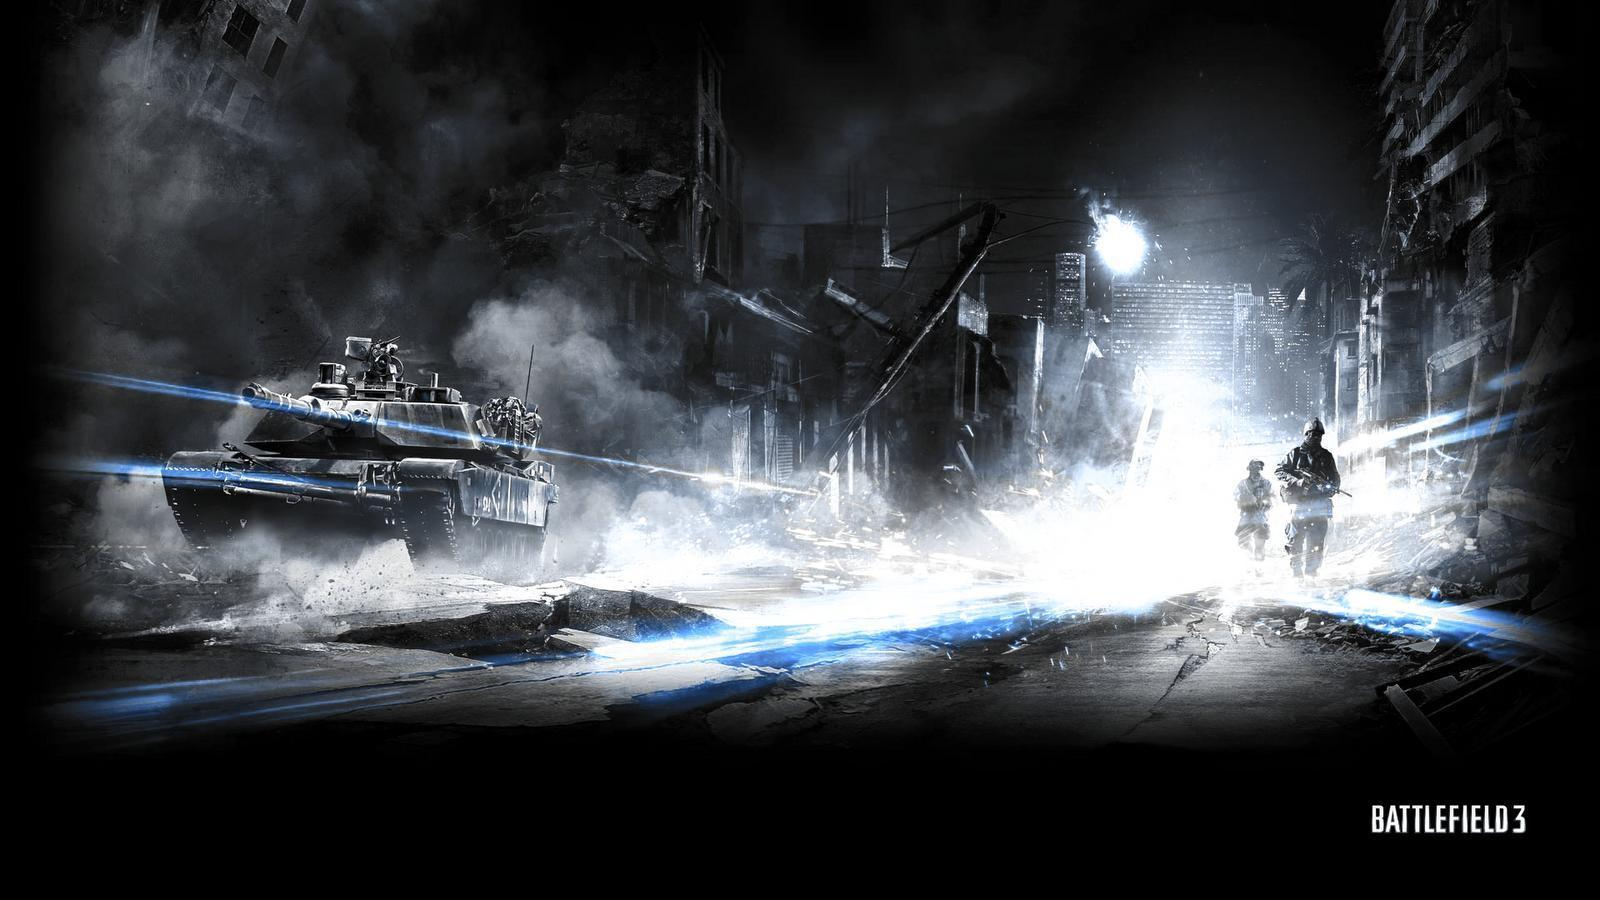 battlefield 3 pc wallpapers - photo #26